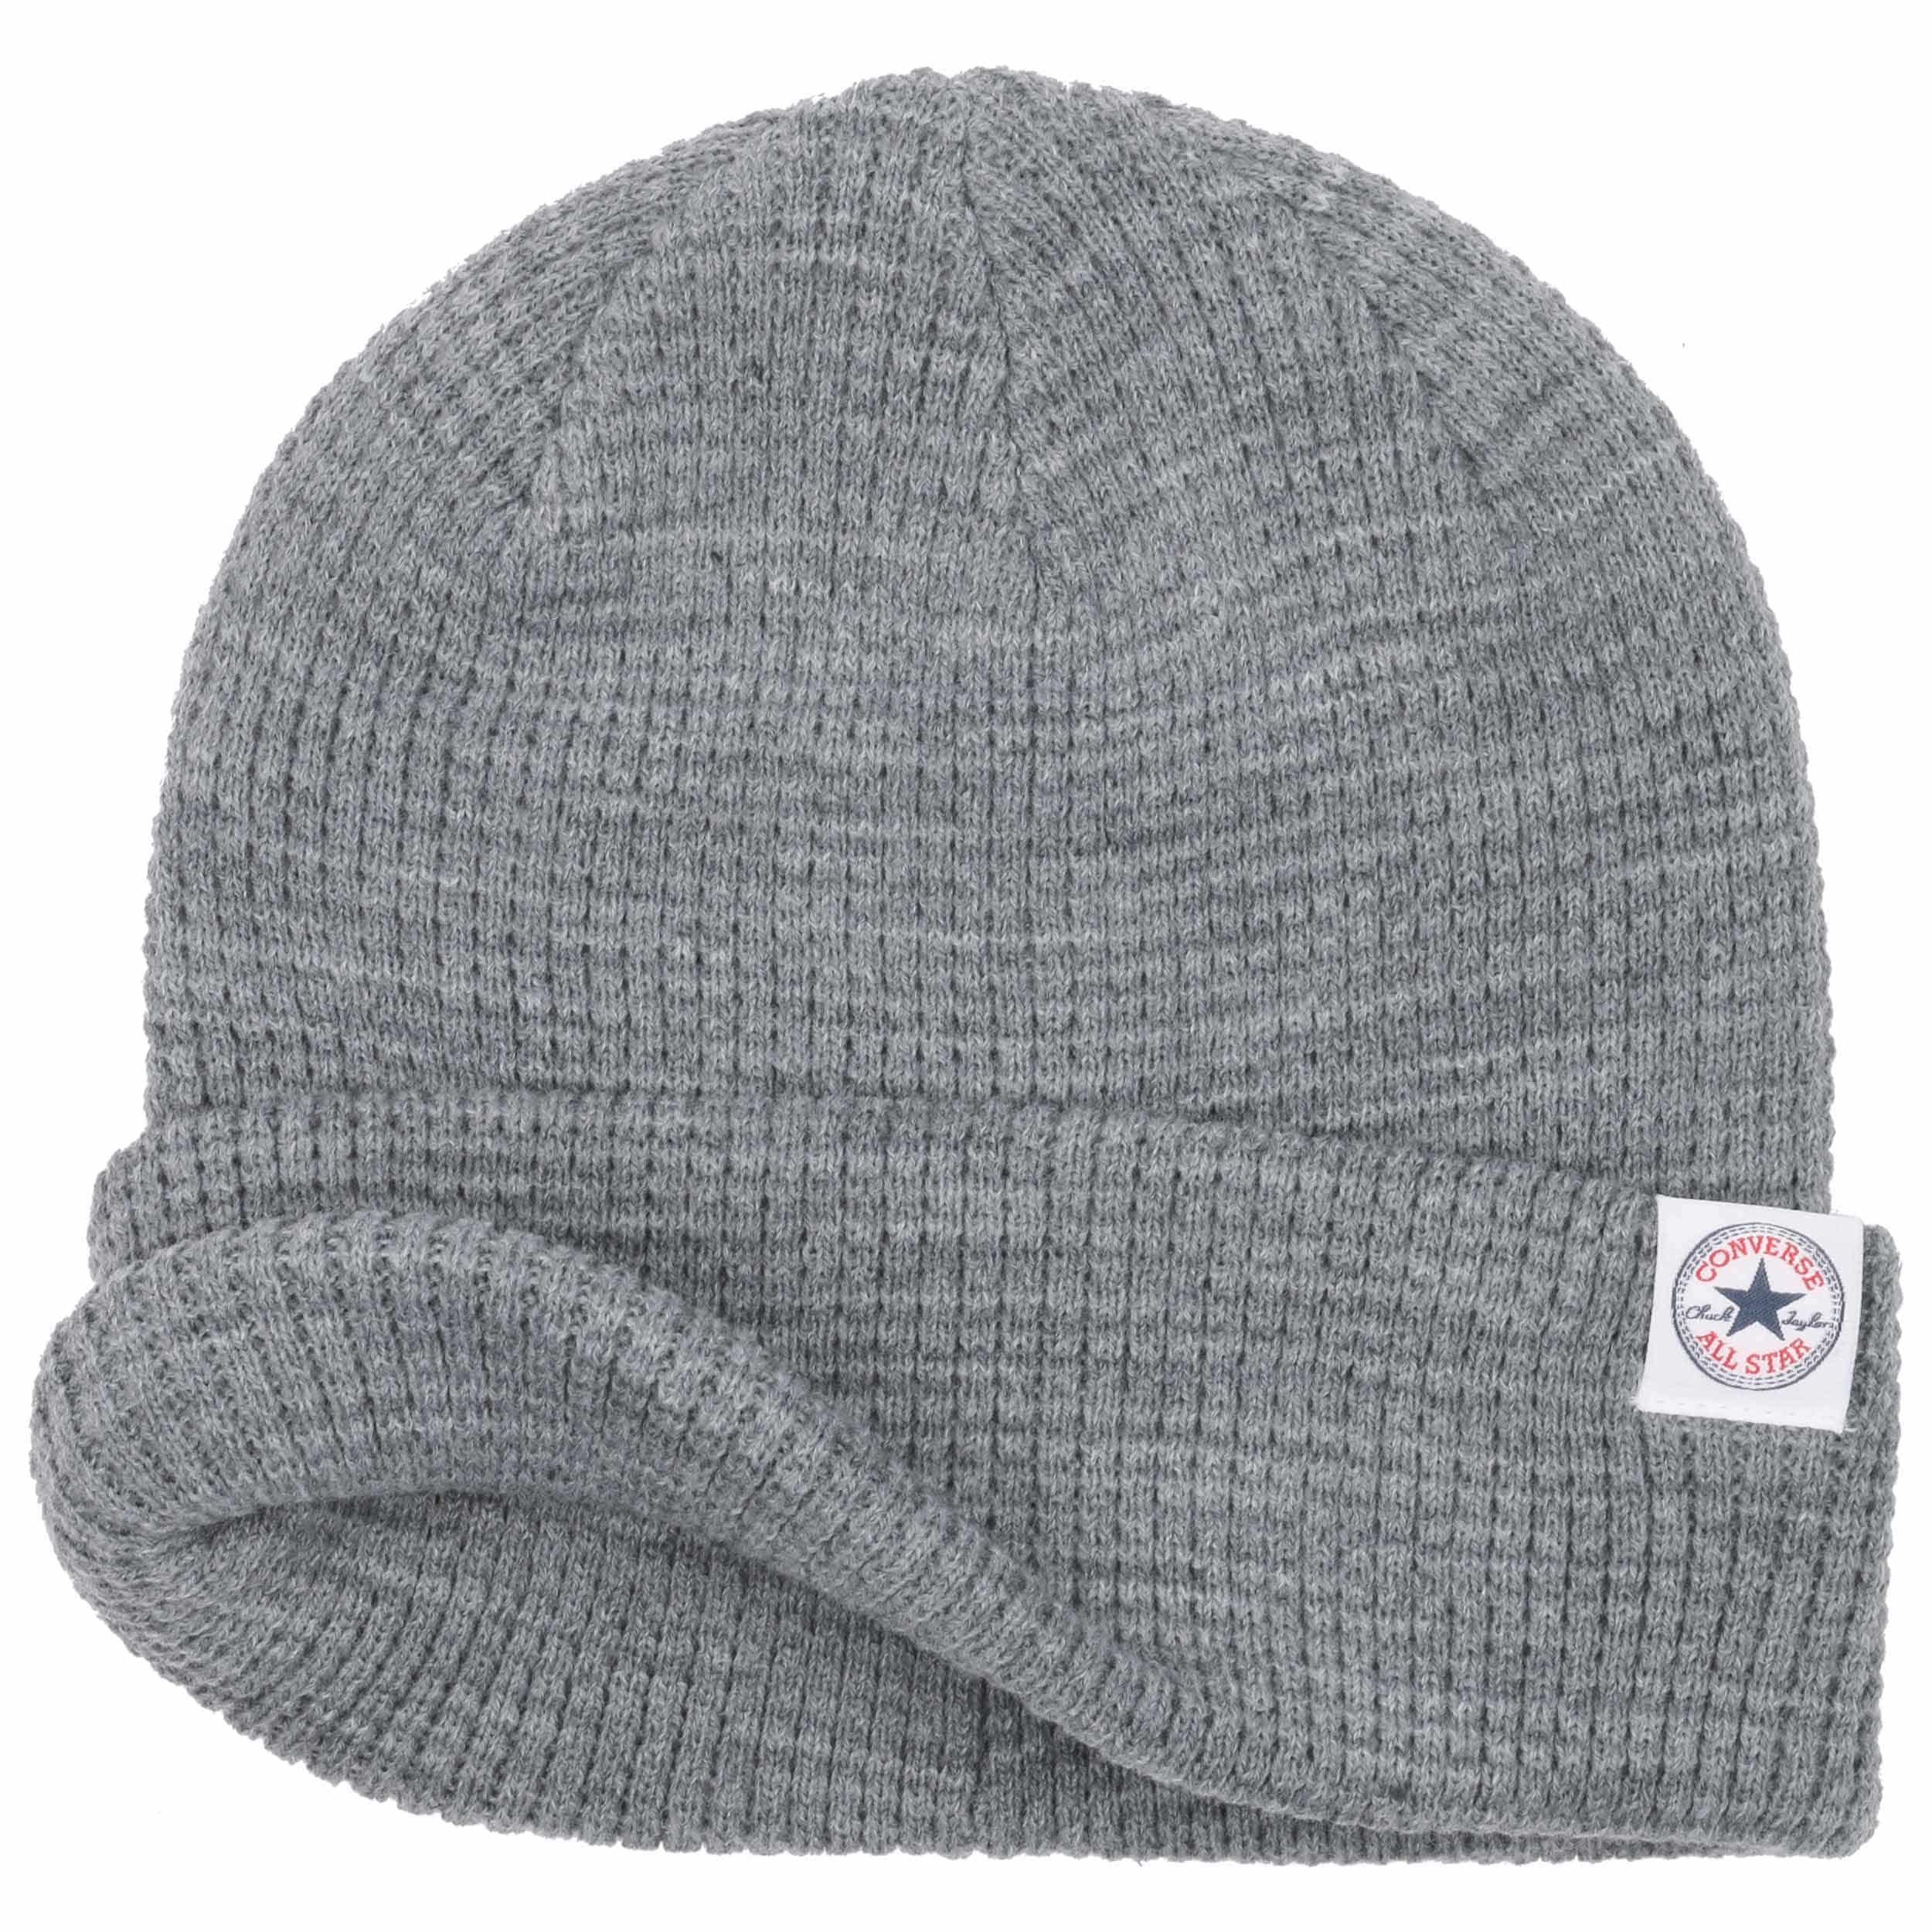 9b70903abb Thermal 2 in 1 Beanie by Converse, GBP 18,95 --> Hats, caps ...